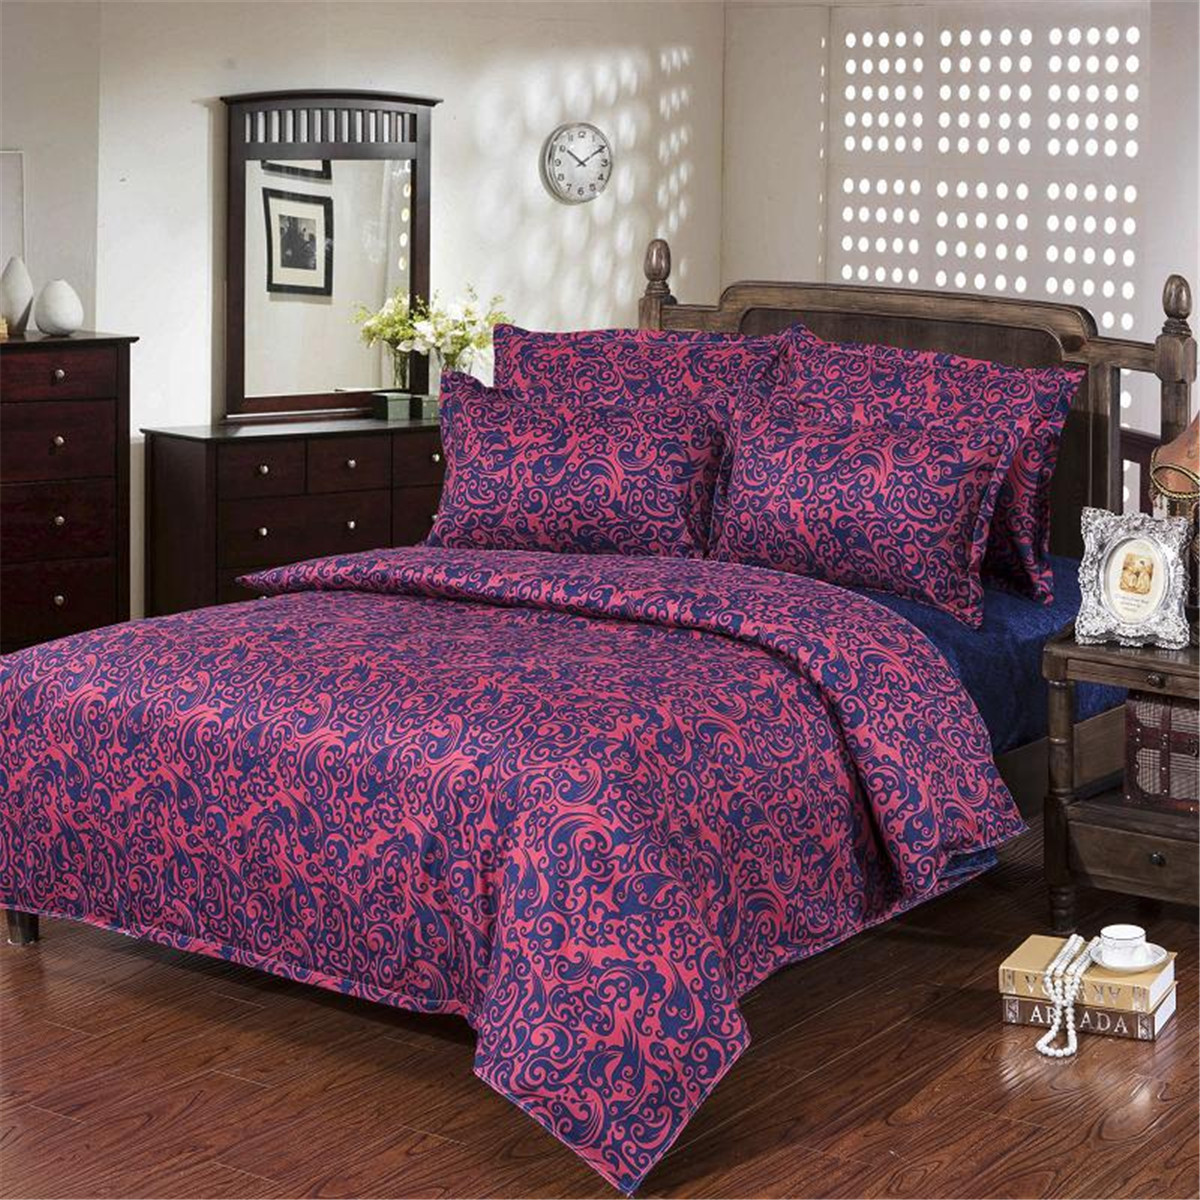 single double queen king size bedding sets flowers pillow case quilt duvet cover ebay. Black Bedroom Furniture Sets. Home Design Ideas